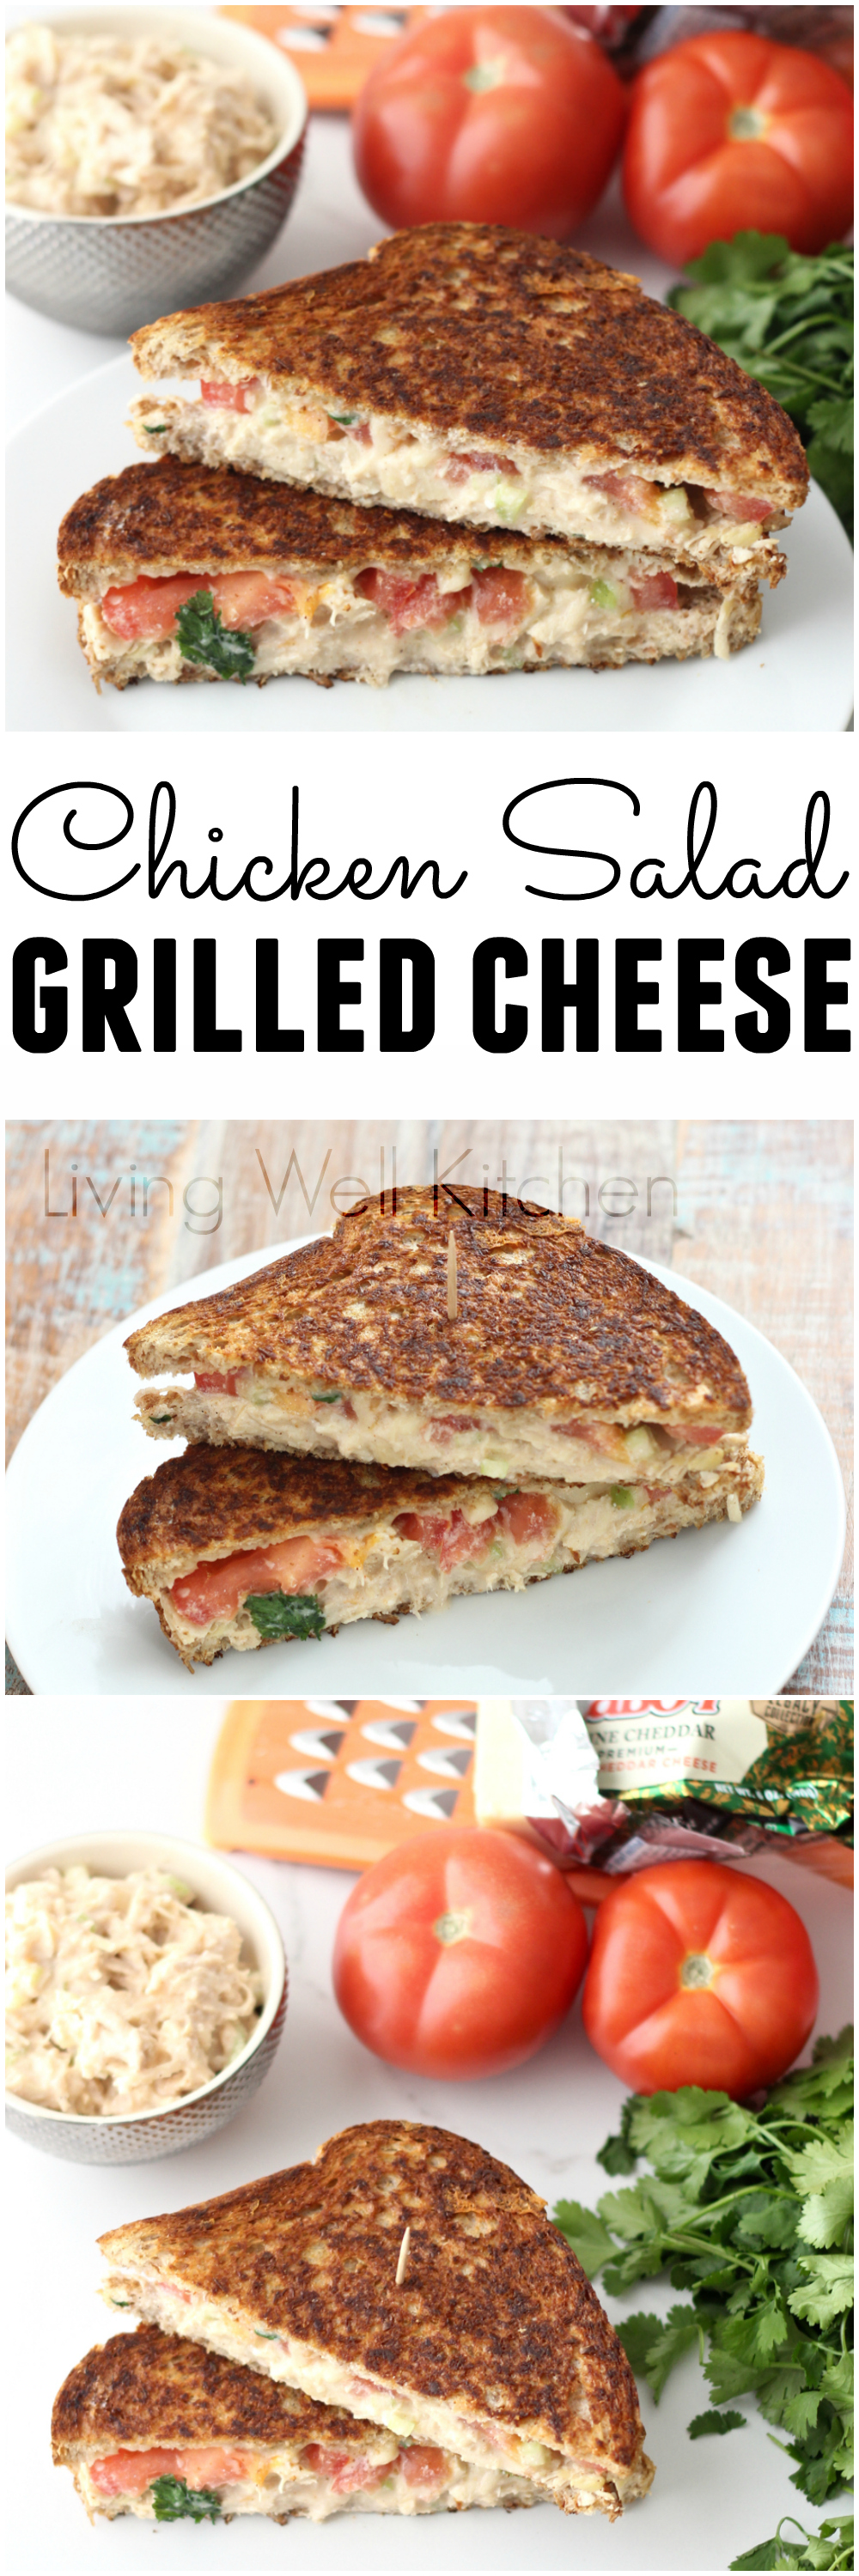 Celebrate Grilled Cheese Month with a Chicken Salad Grilled Cheese from @memeinge. Putting chicken salad on your grilled cheese boosts the protein to keep you satisfied and full for longer, and the tomato slices and parsley add fresh flavor.